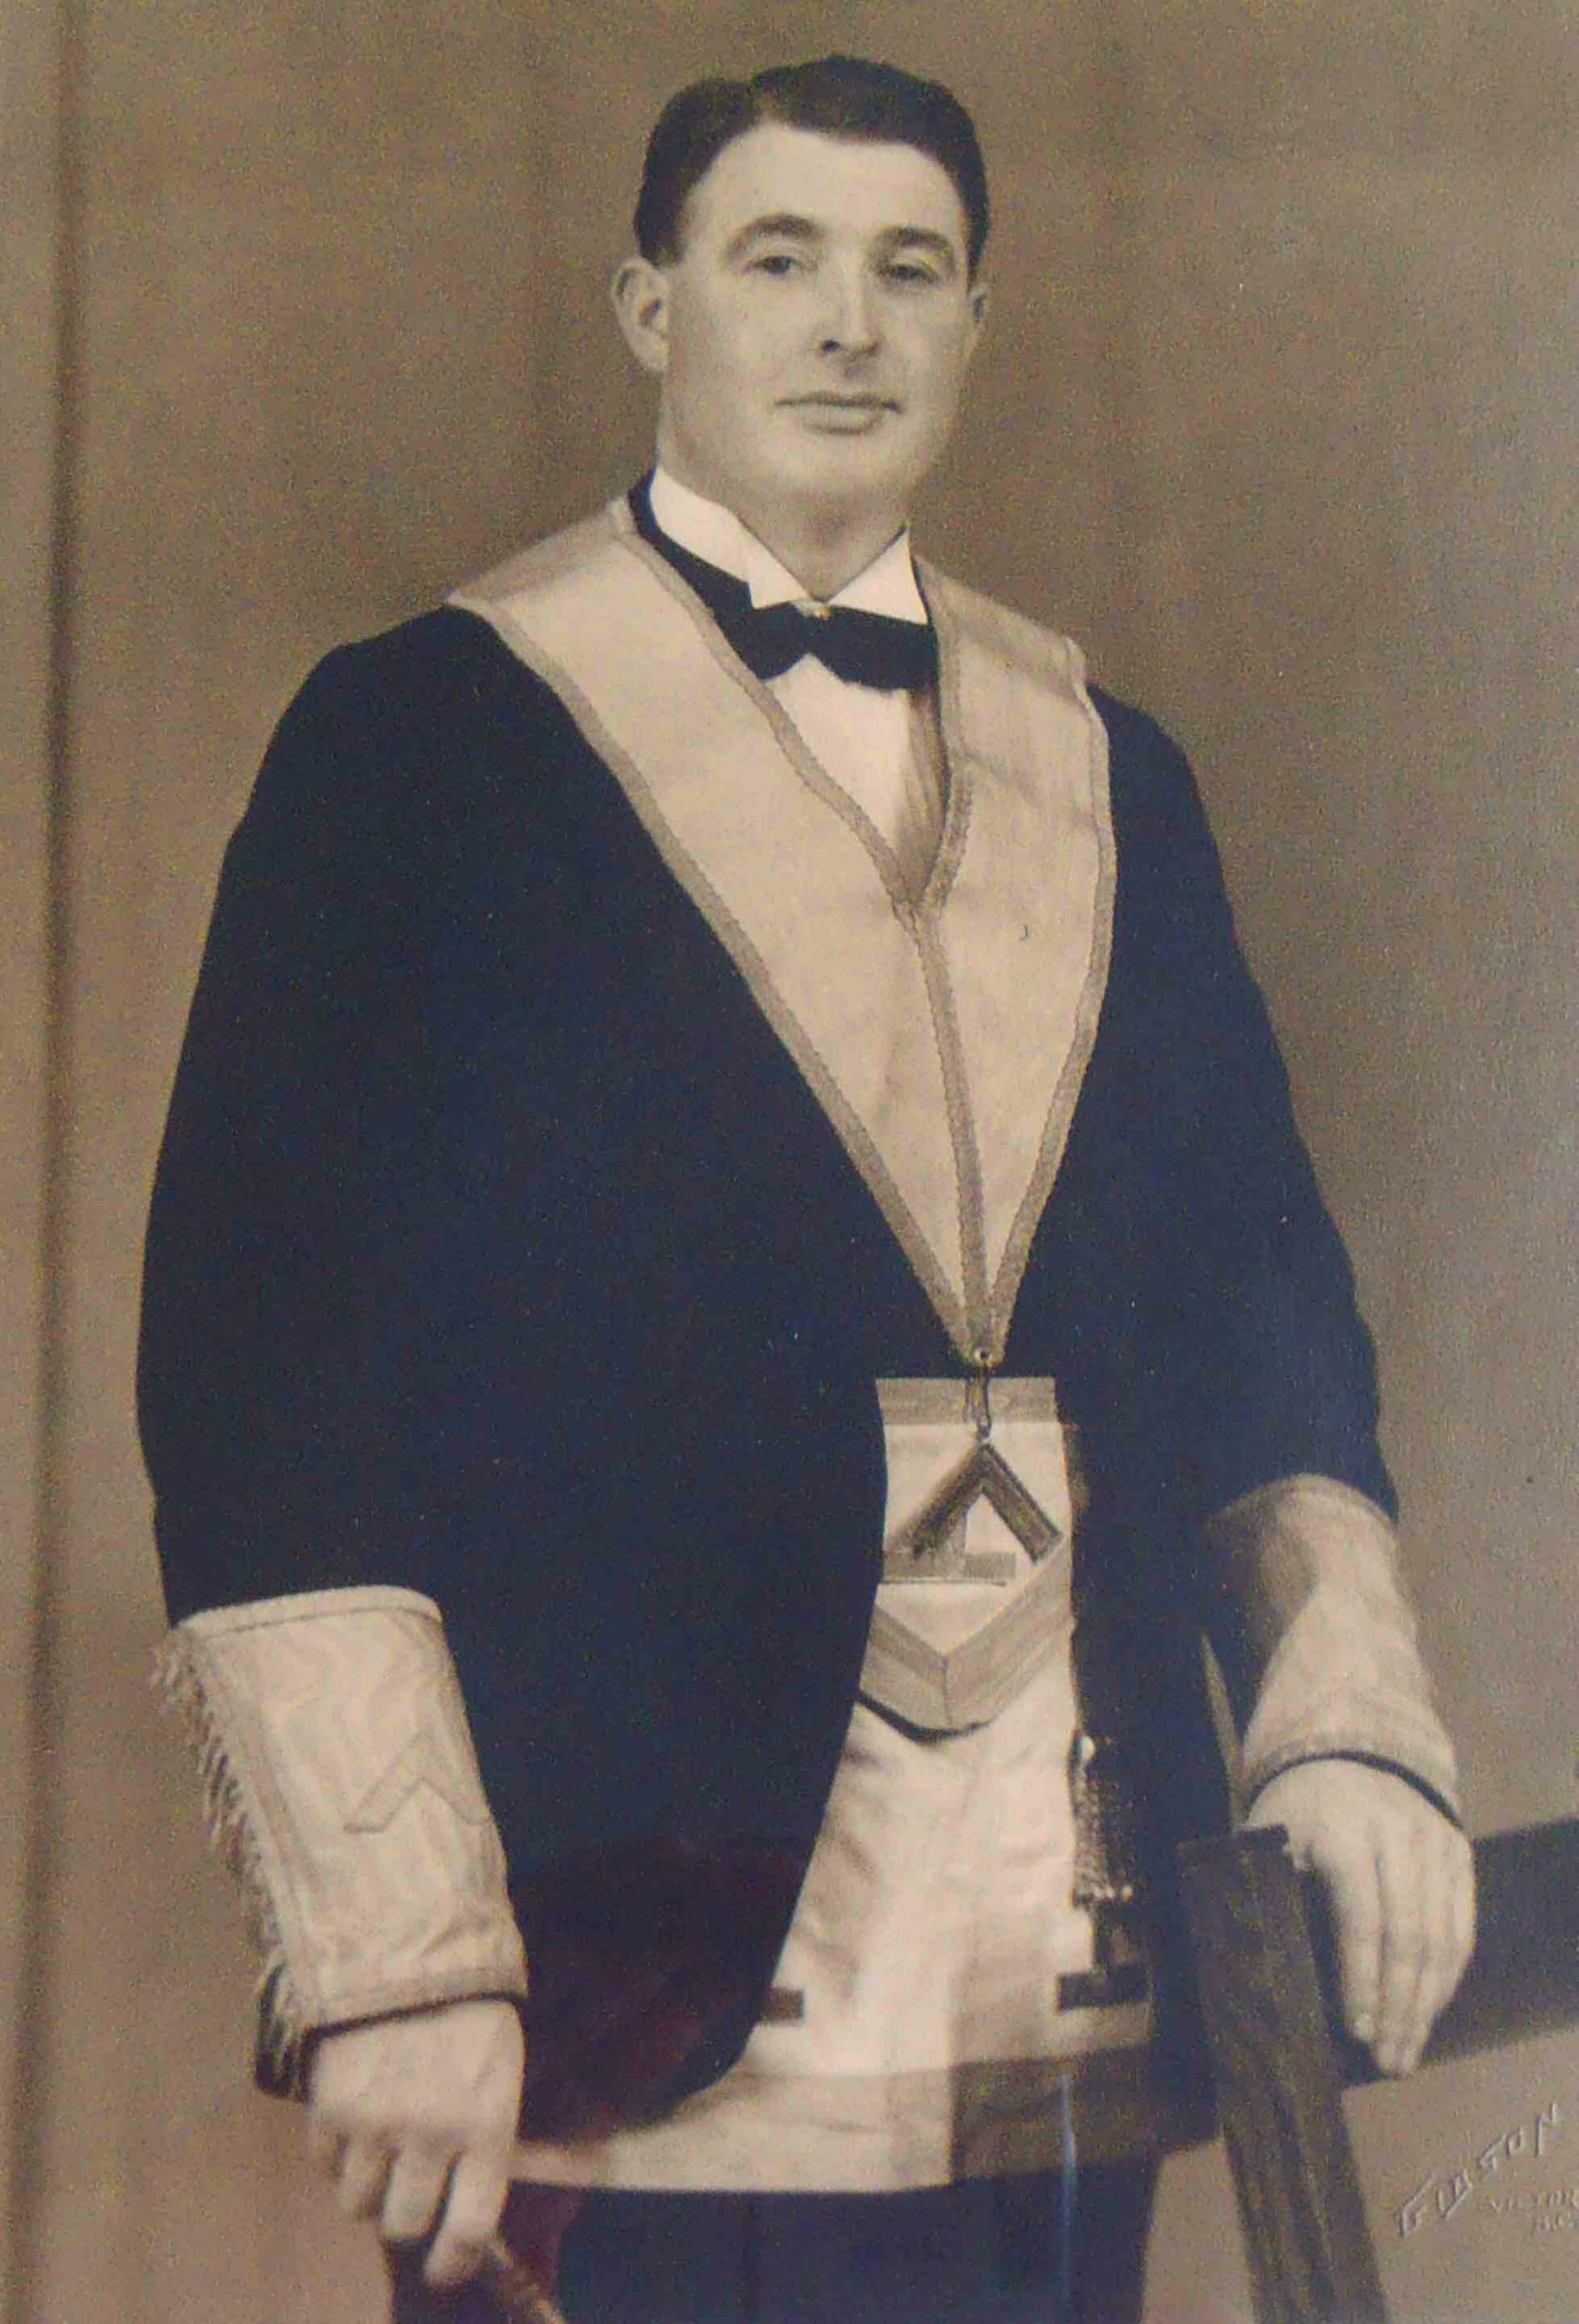 Claude Green in Masonic regalia, circa 1941 (Photo courtesy of Temple Lodge, No.33 A.F.&A.M.)